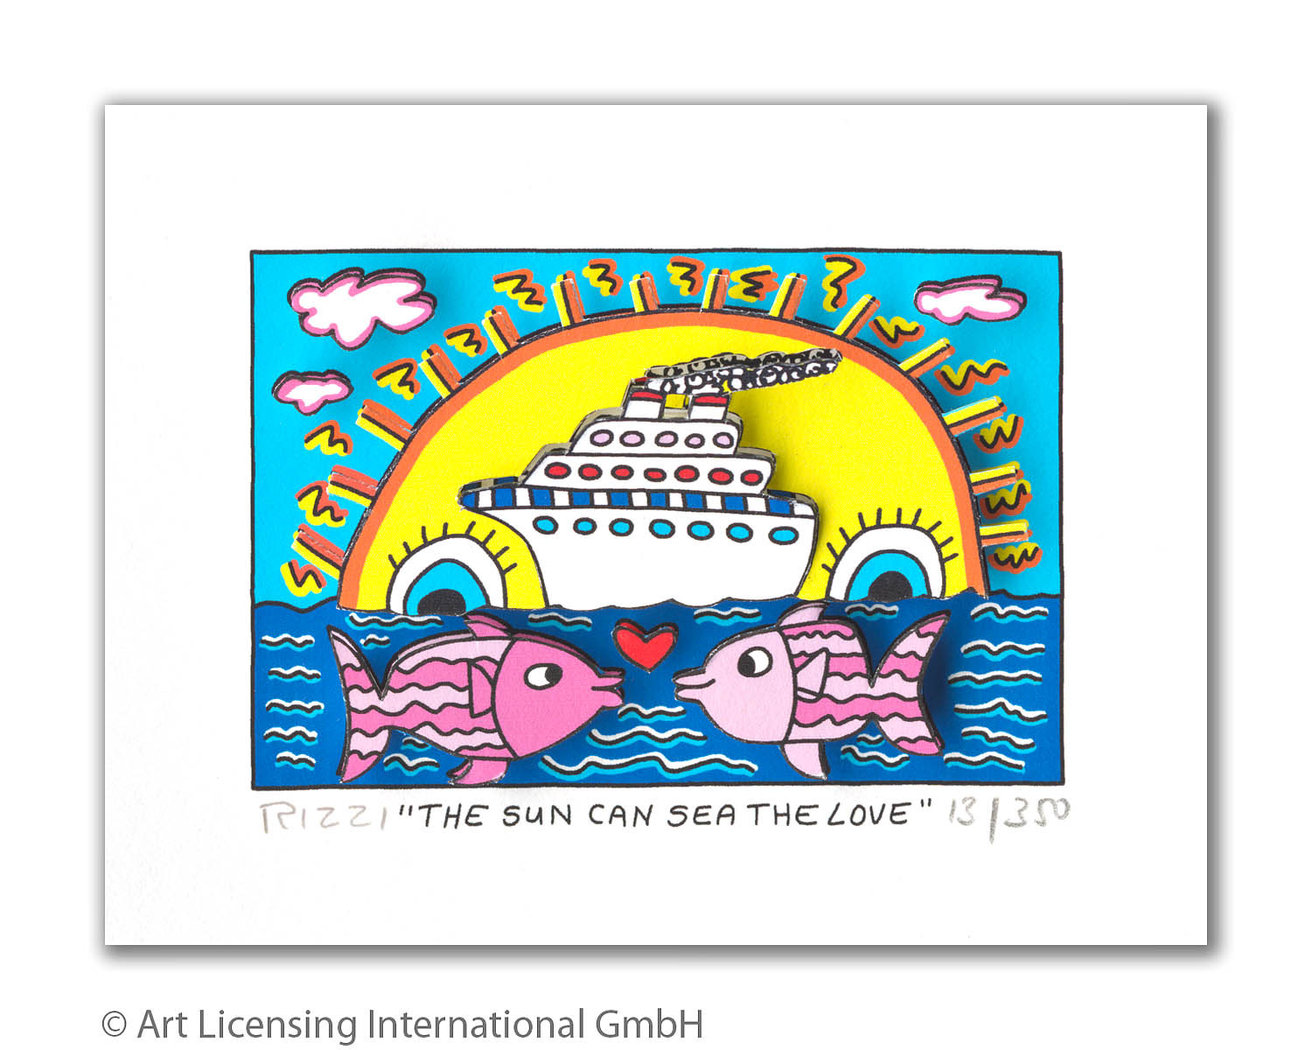 James Rizzi - THE SUN CAN SEA THE LOVE